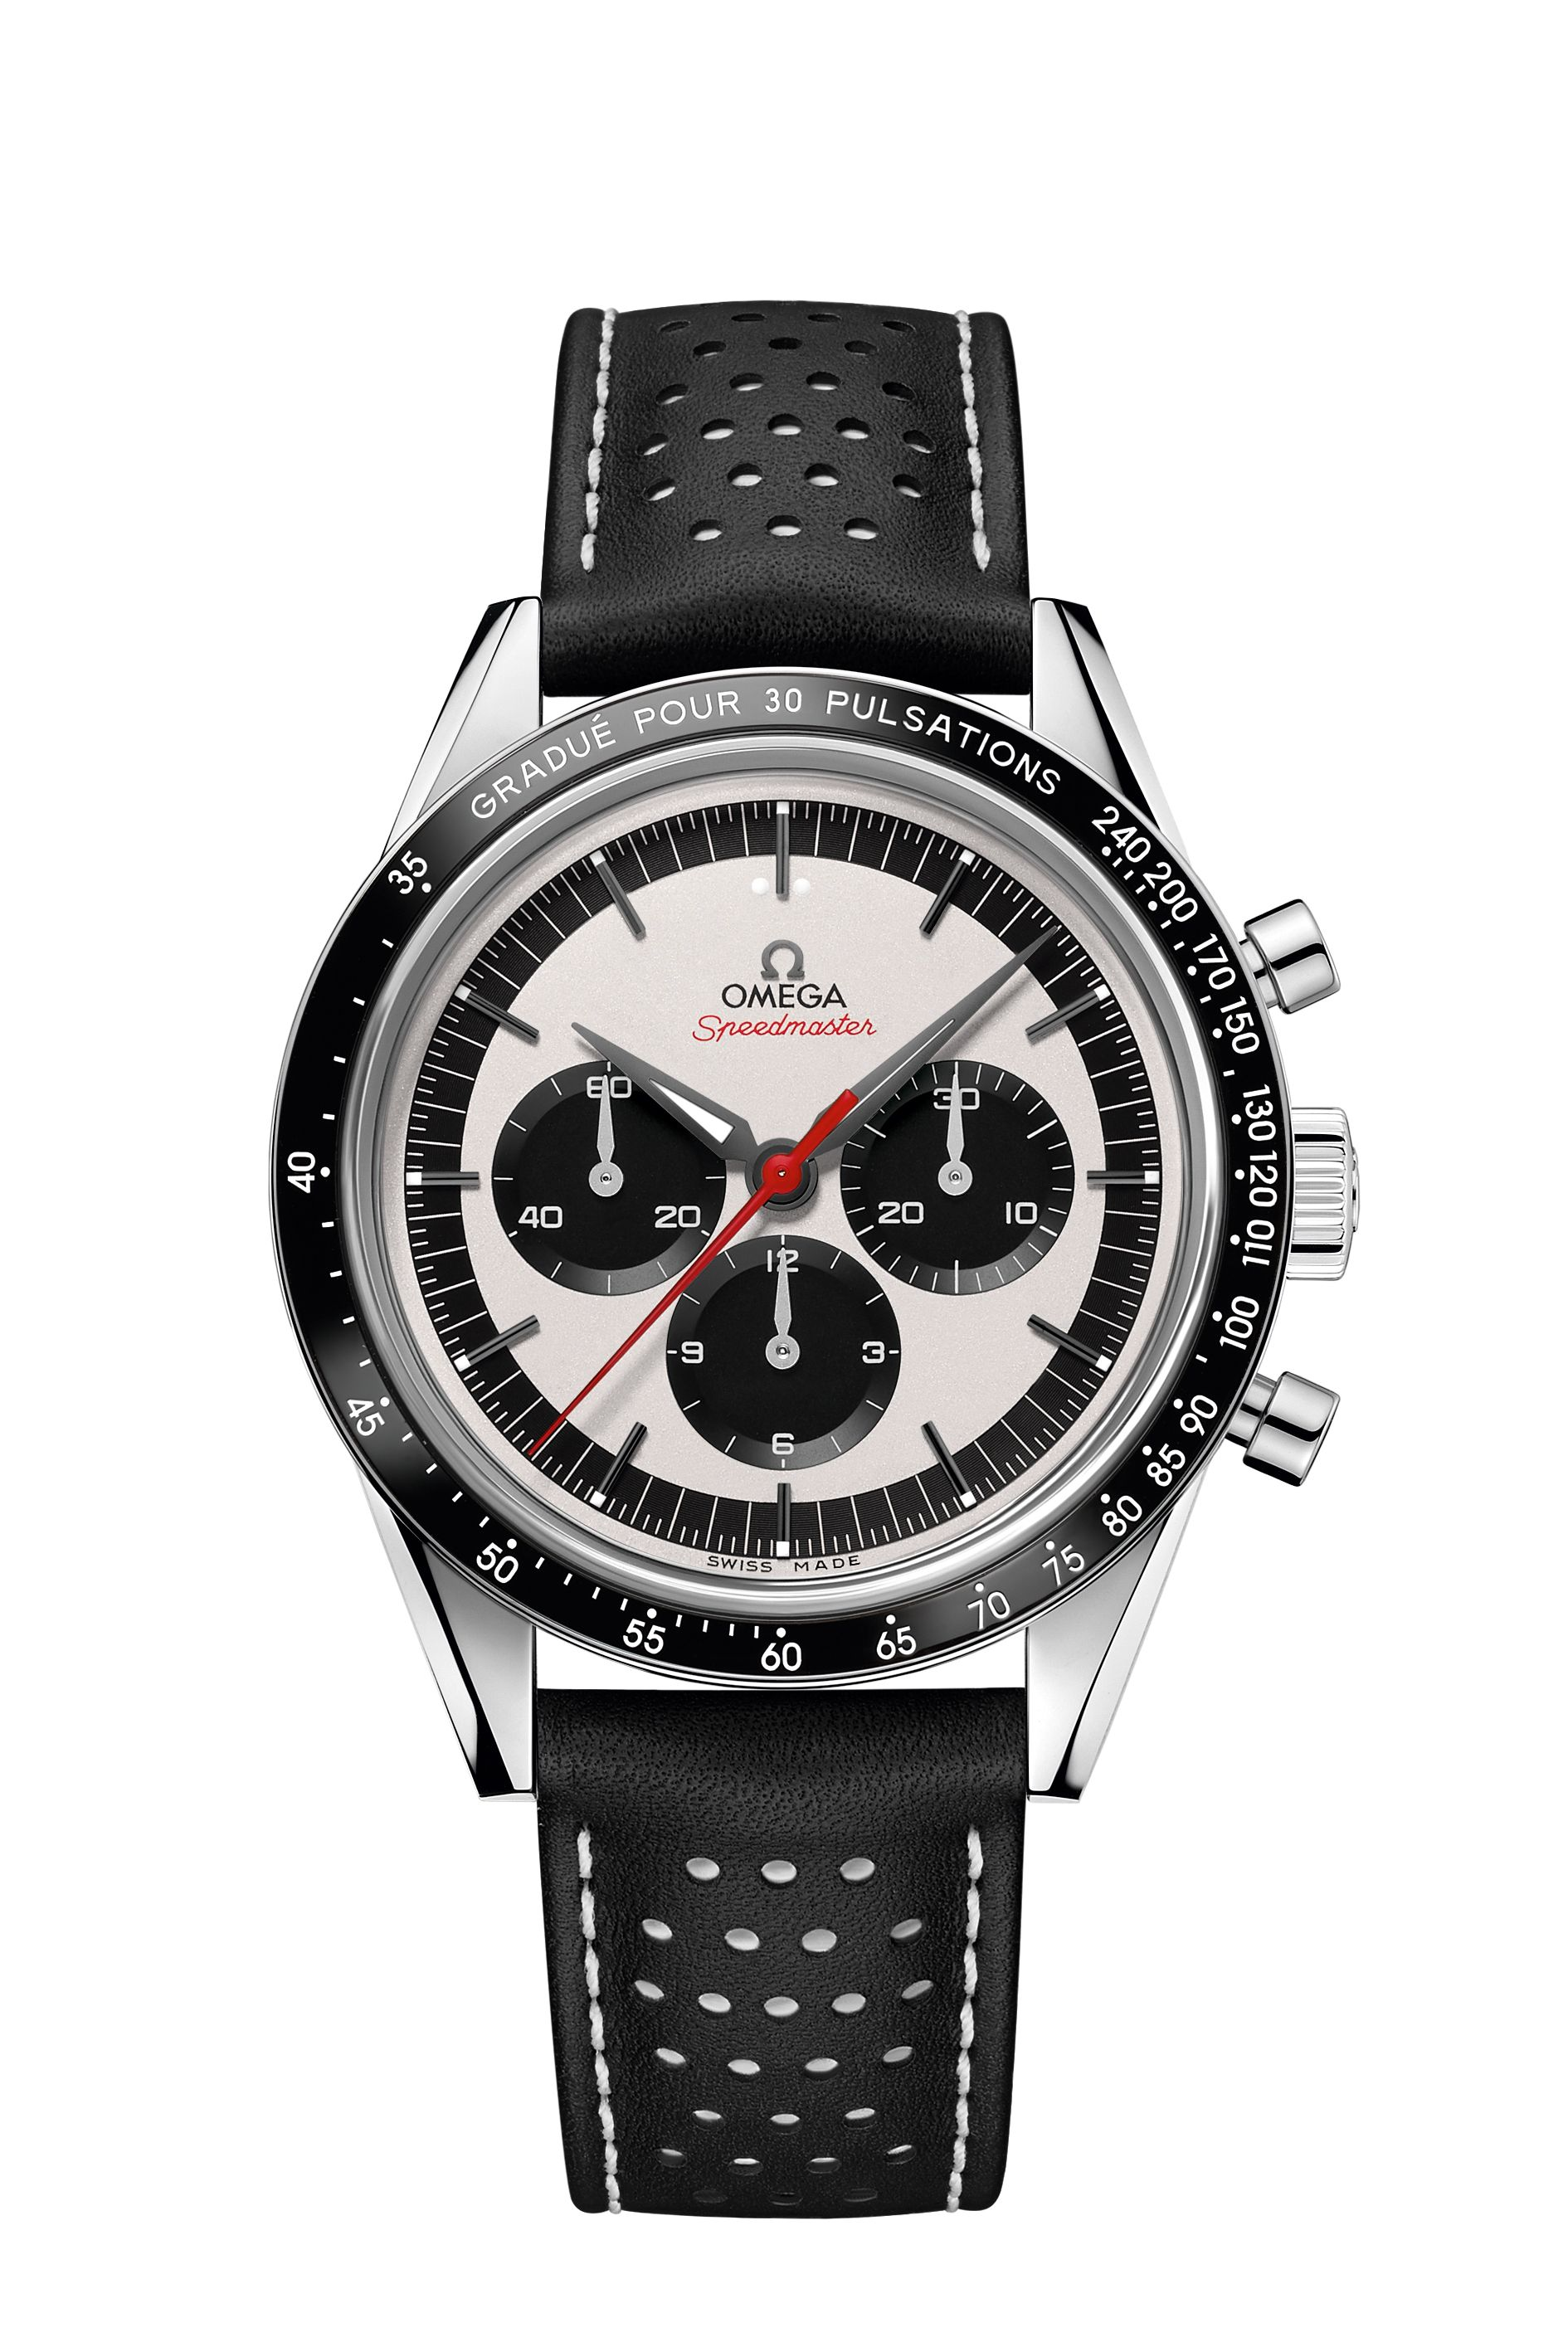 year inspired edition heuer by last limited style brand have s ambassador cristiano became watch pilot watches they ronaldo for football now watc talented a tag the launched notes